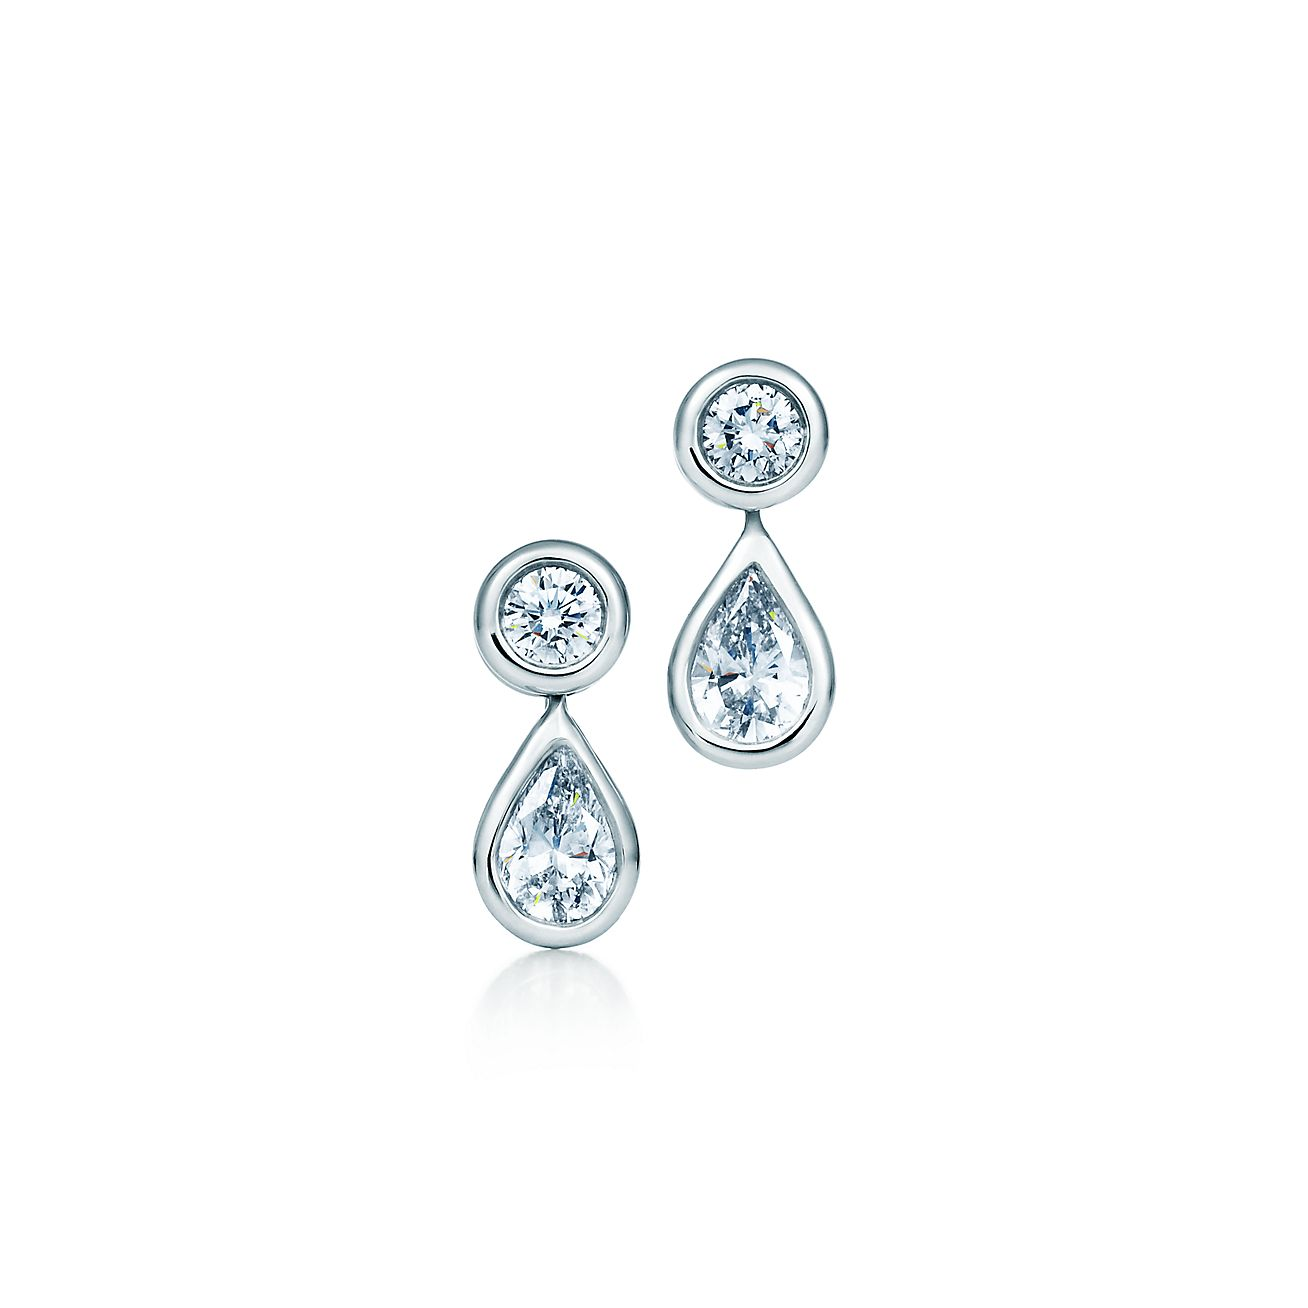 db earrings stud platinum de diamond earring classic jewellery beers